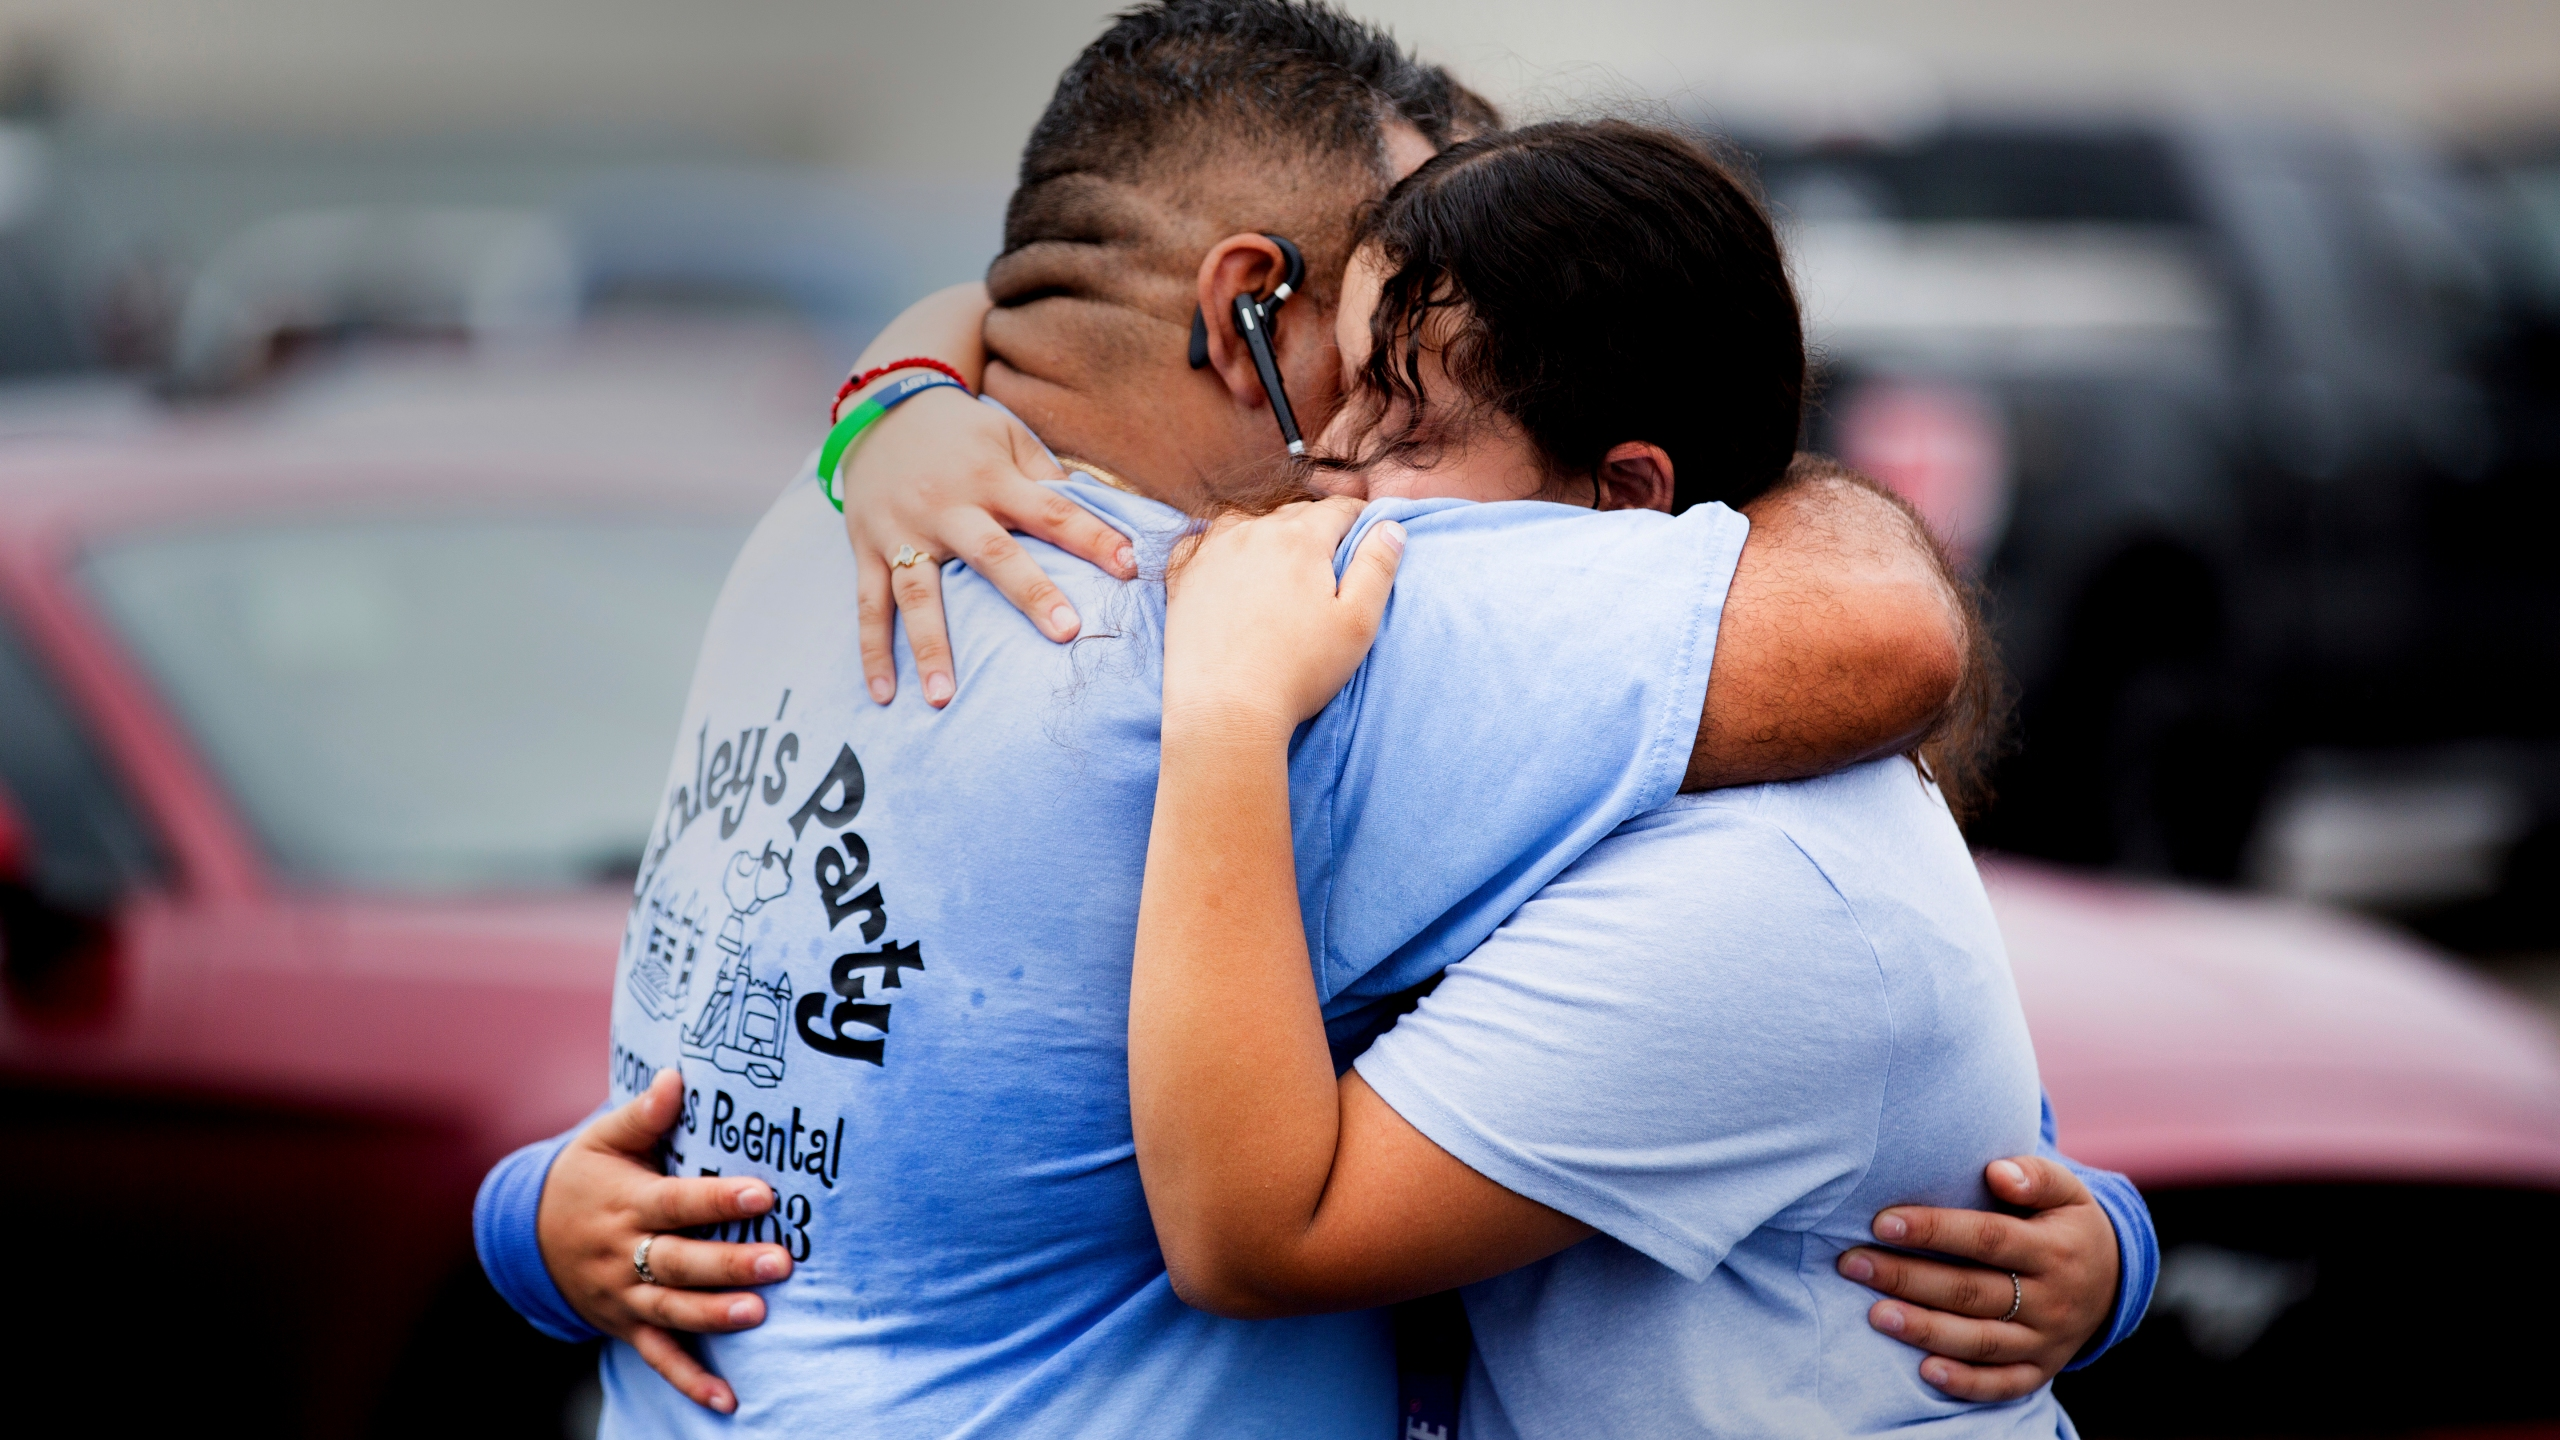 Yes Prep Southwest Secondary school 8th grader Kimberly Mendez, 14, right, to embrace her father Rudis and sister Ashley, 16, 11th grade, in a parking lot on the corner of Hiram Clarke Rd. and W. Fuqua St. after an alleged shooting took place at her school, YES Prep Southwest Secondary school, on Friday, Oct. 1, 2021, in Houston. An employee at the Houston charter school was shot and wounded by a former student, police said. Houston Police Chief Troy Finner said a 25-year-old man surrendered after being surrounded by police. (Marie D. De Jesús/Houston Chronicle via AP)